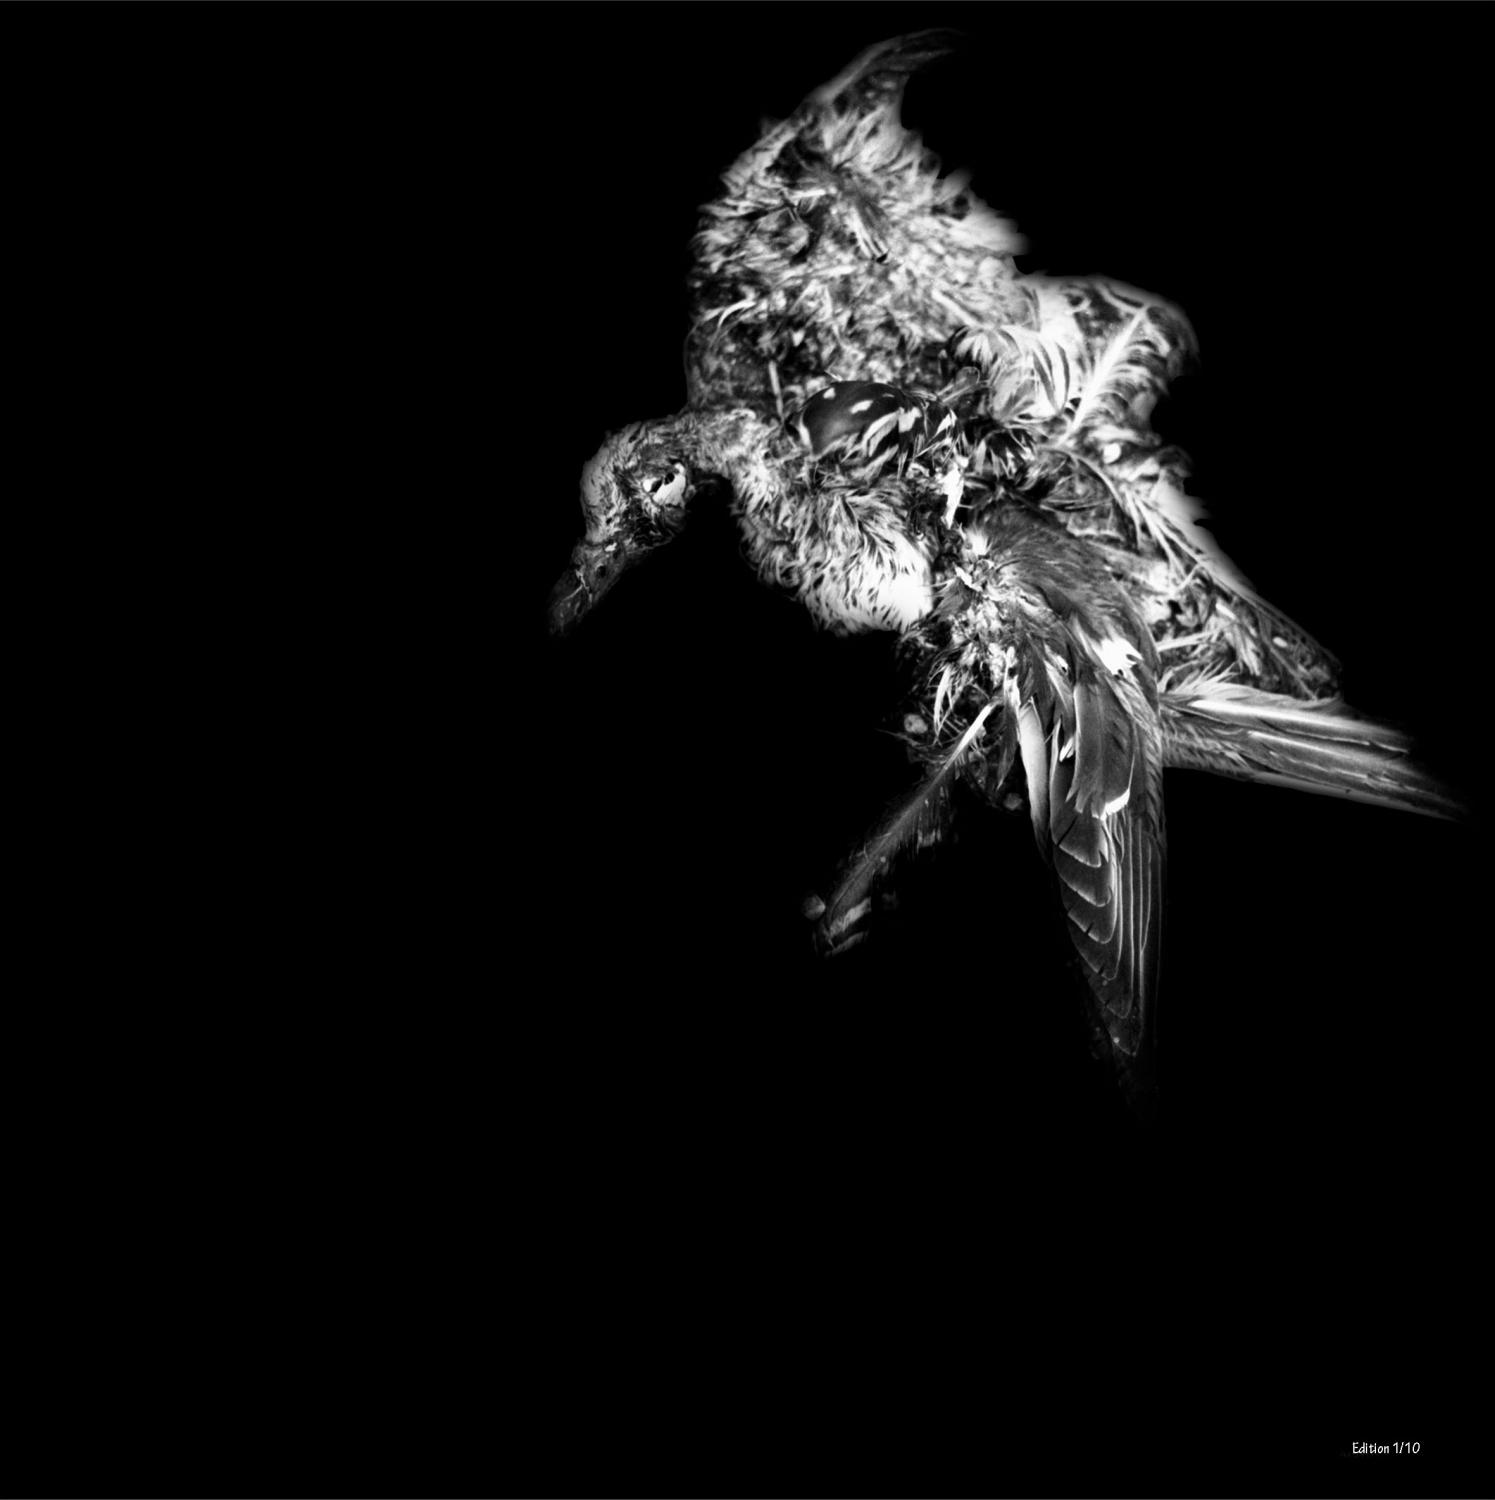 Black and white bird aesthetic stylish beautiful artistic photographs for sale online